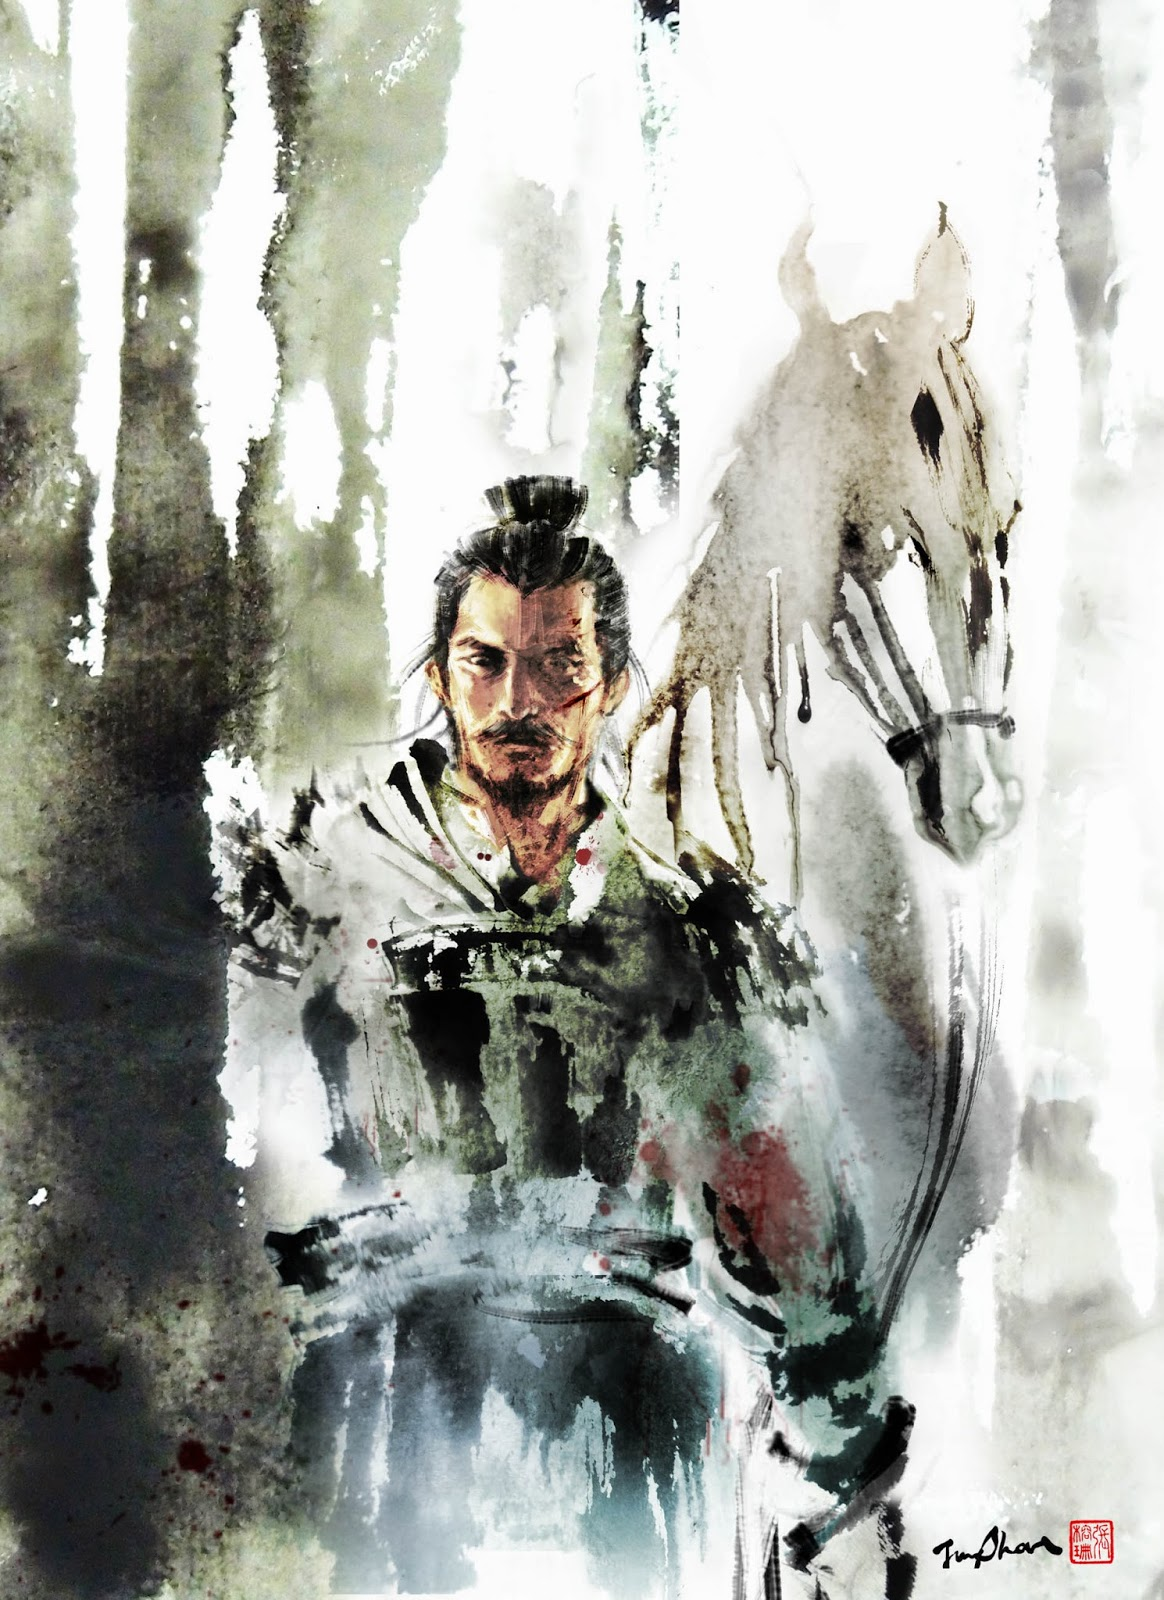 Ancient Chinese Girl Wallpaper Jungshan Ink Illustration Wuxia Magazine Cover